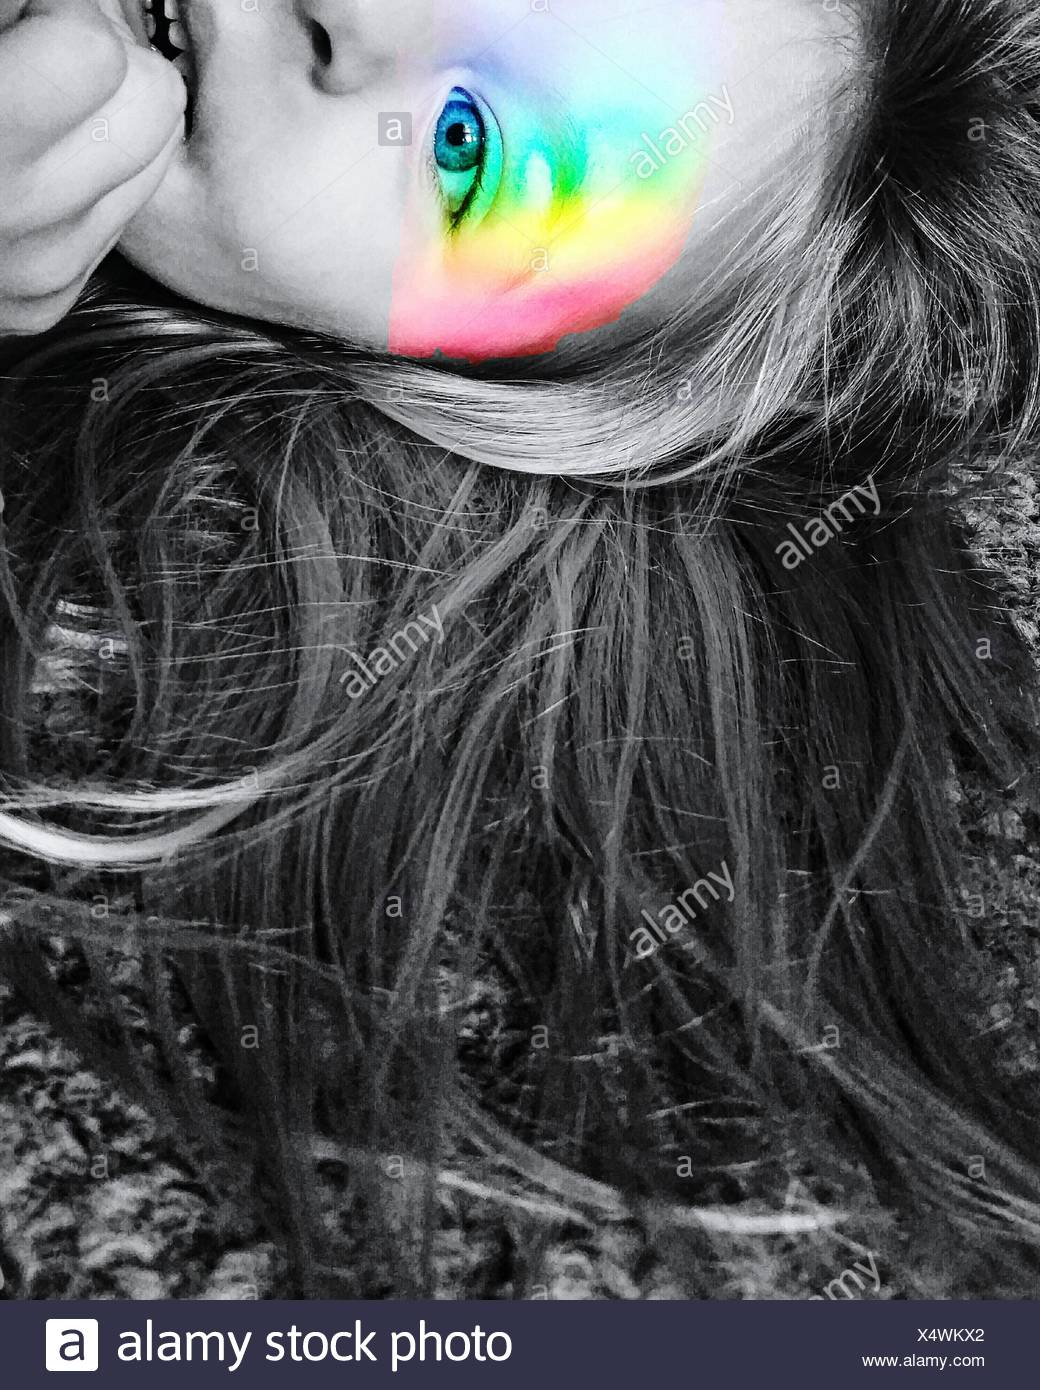 Digital Composite Image Of Girl With Rainbow Color Flash On Face - Stock Image